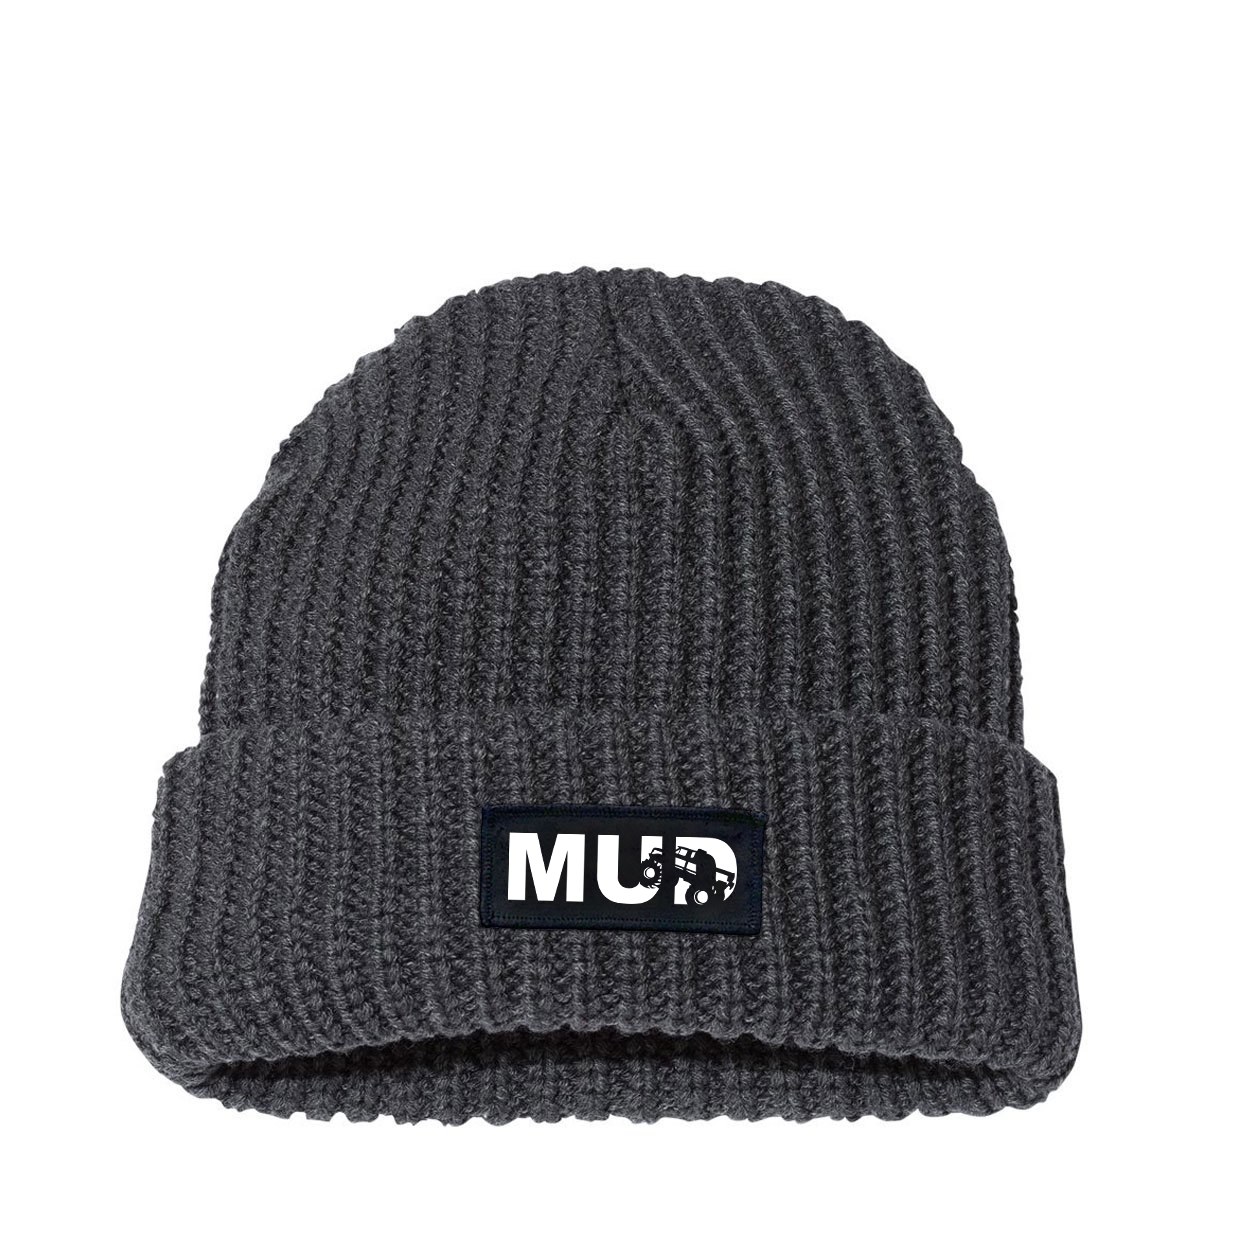 Mud Truck Logo Night Out Woven Patch Roll Up Jumbo Chunky Knit Beanie Charcoal (White Logo)